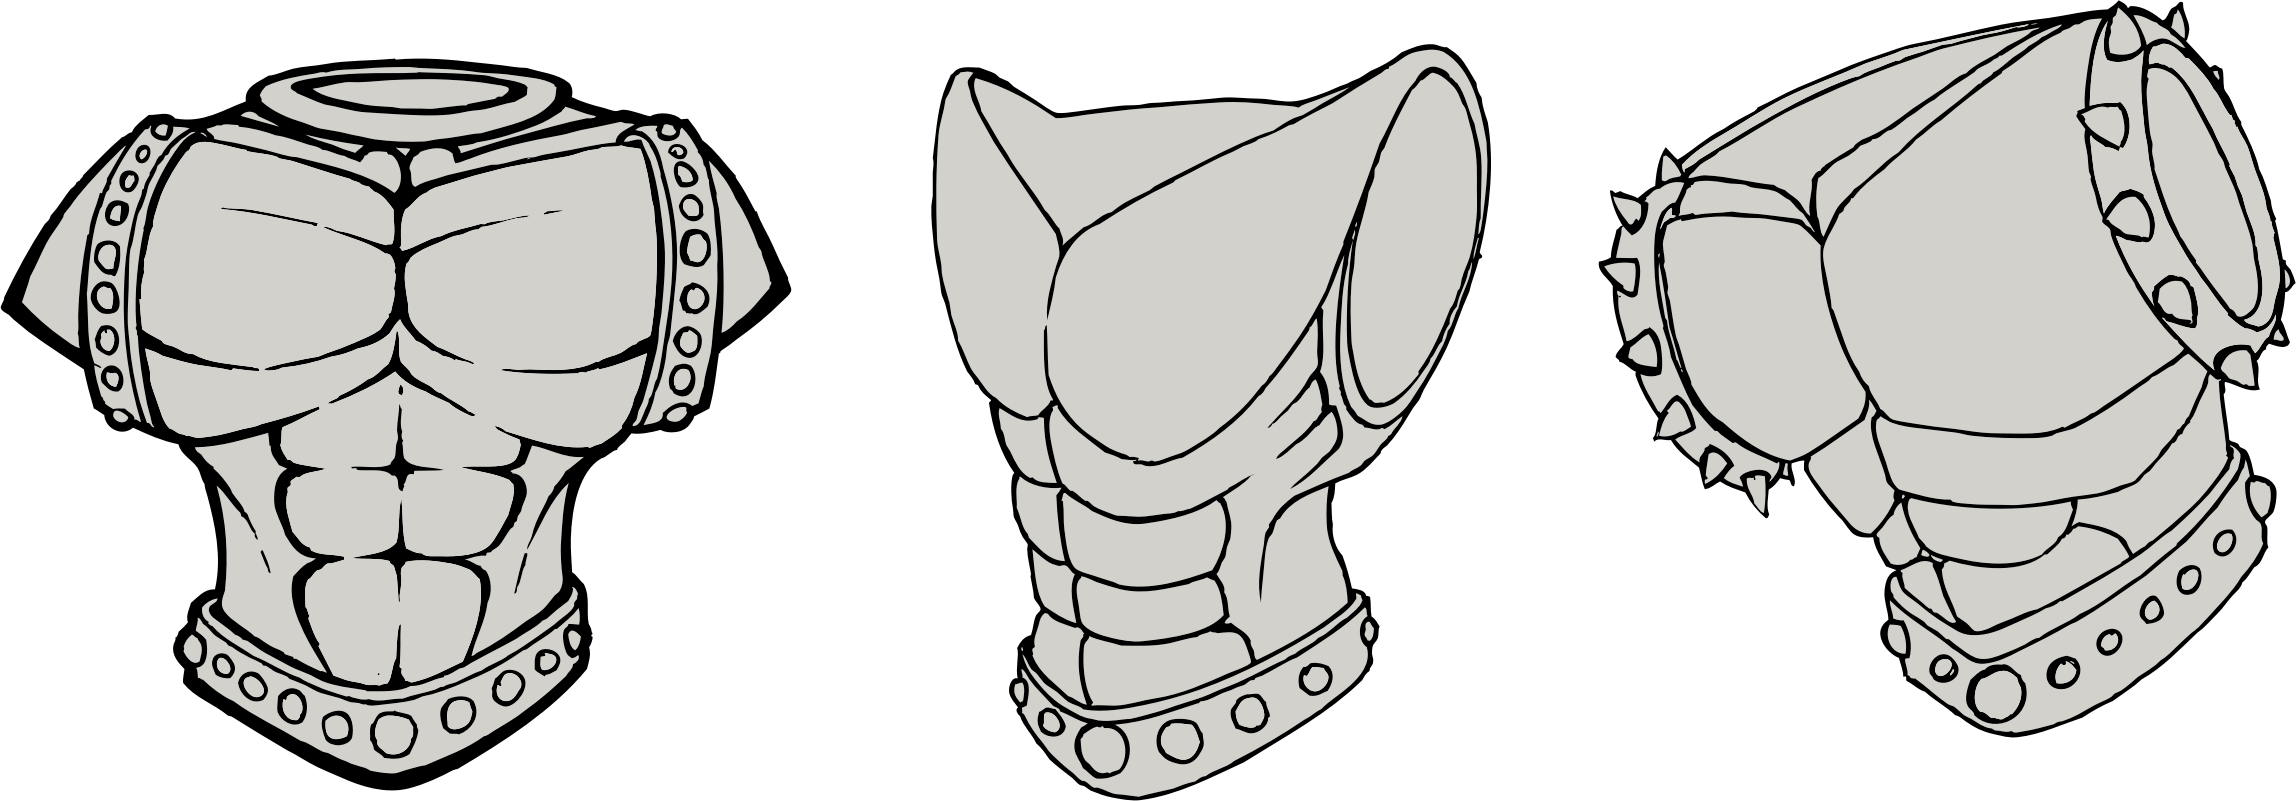 Armor clipart #8, Download drawings